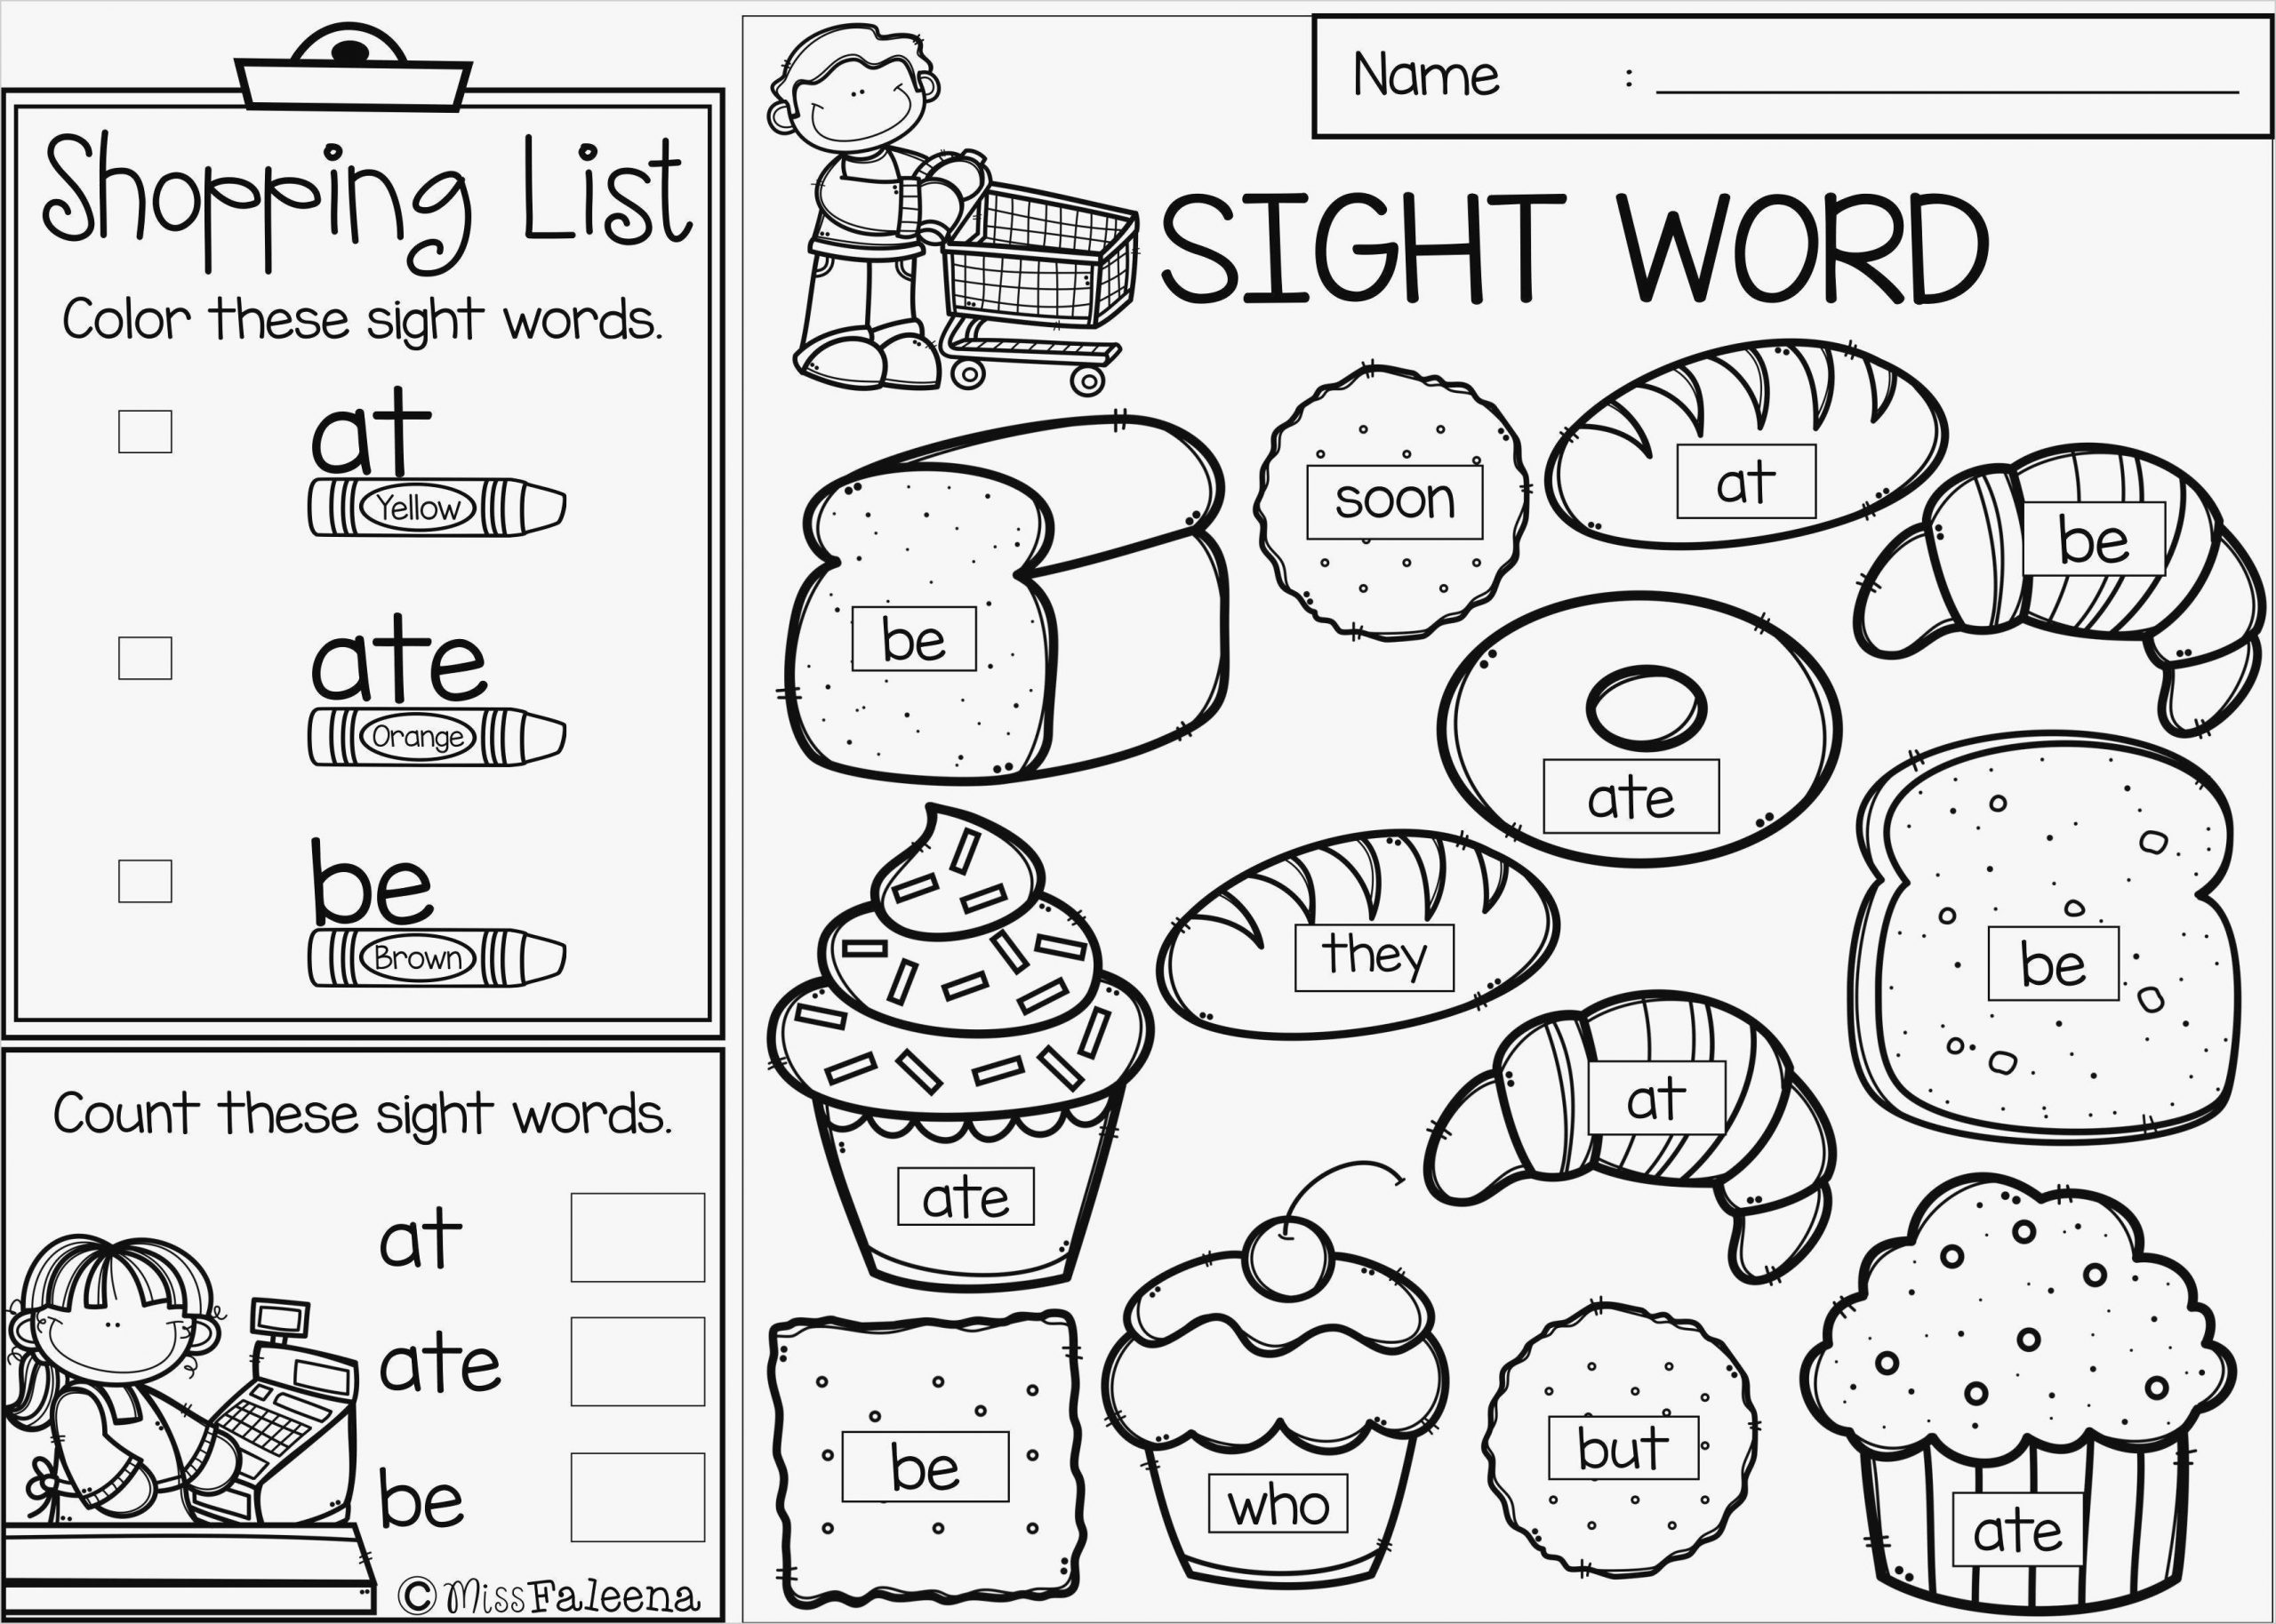 2nd Grade Sight Word Worksheets 1st Grade Worksheet Sight Words for Learning 1st Grade